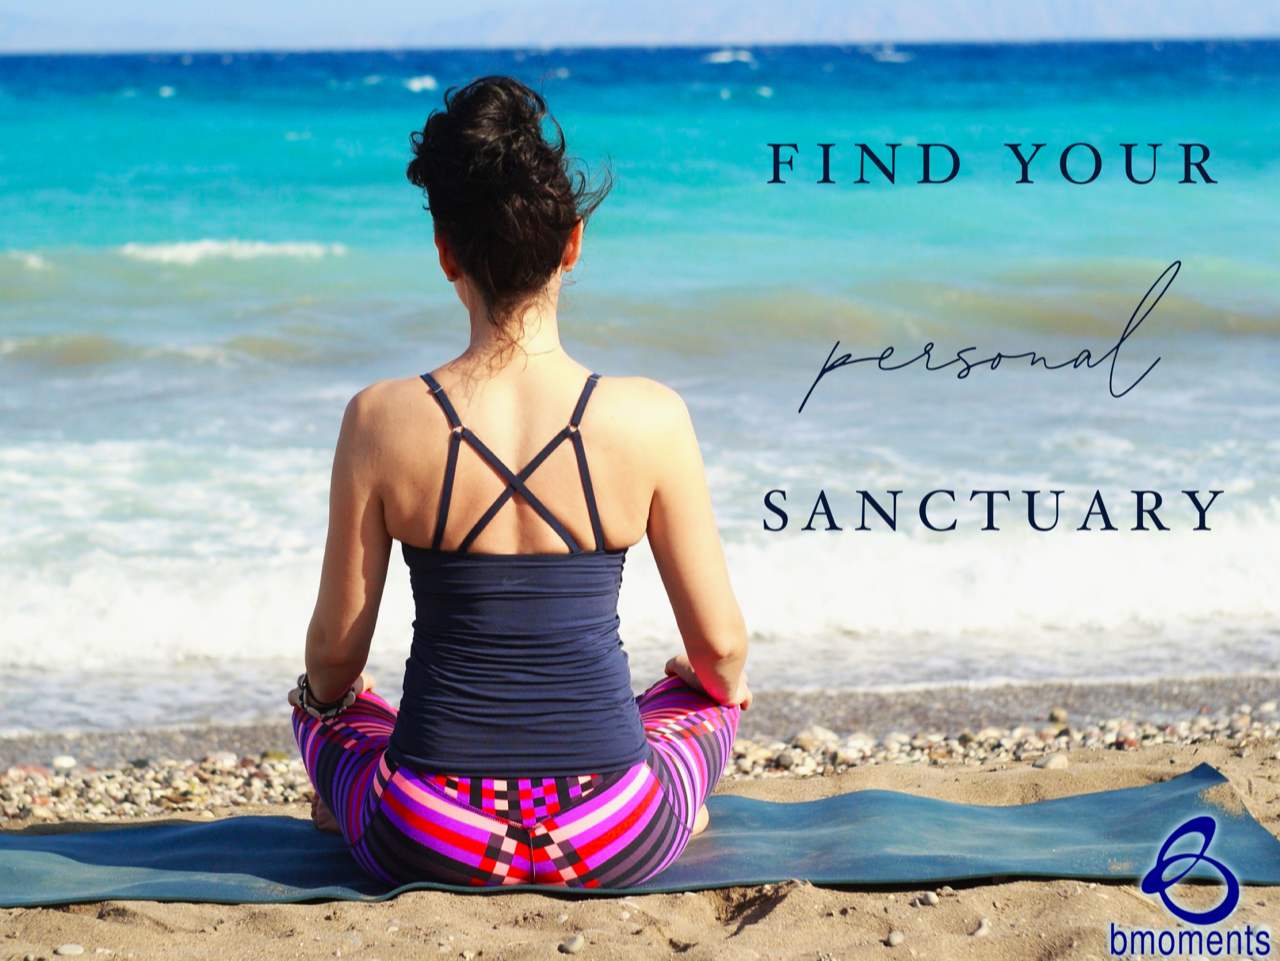 Take Time to Identify Your Personal Sanctuary